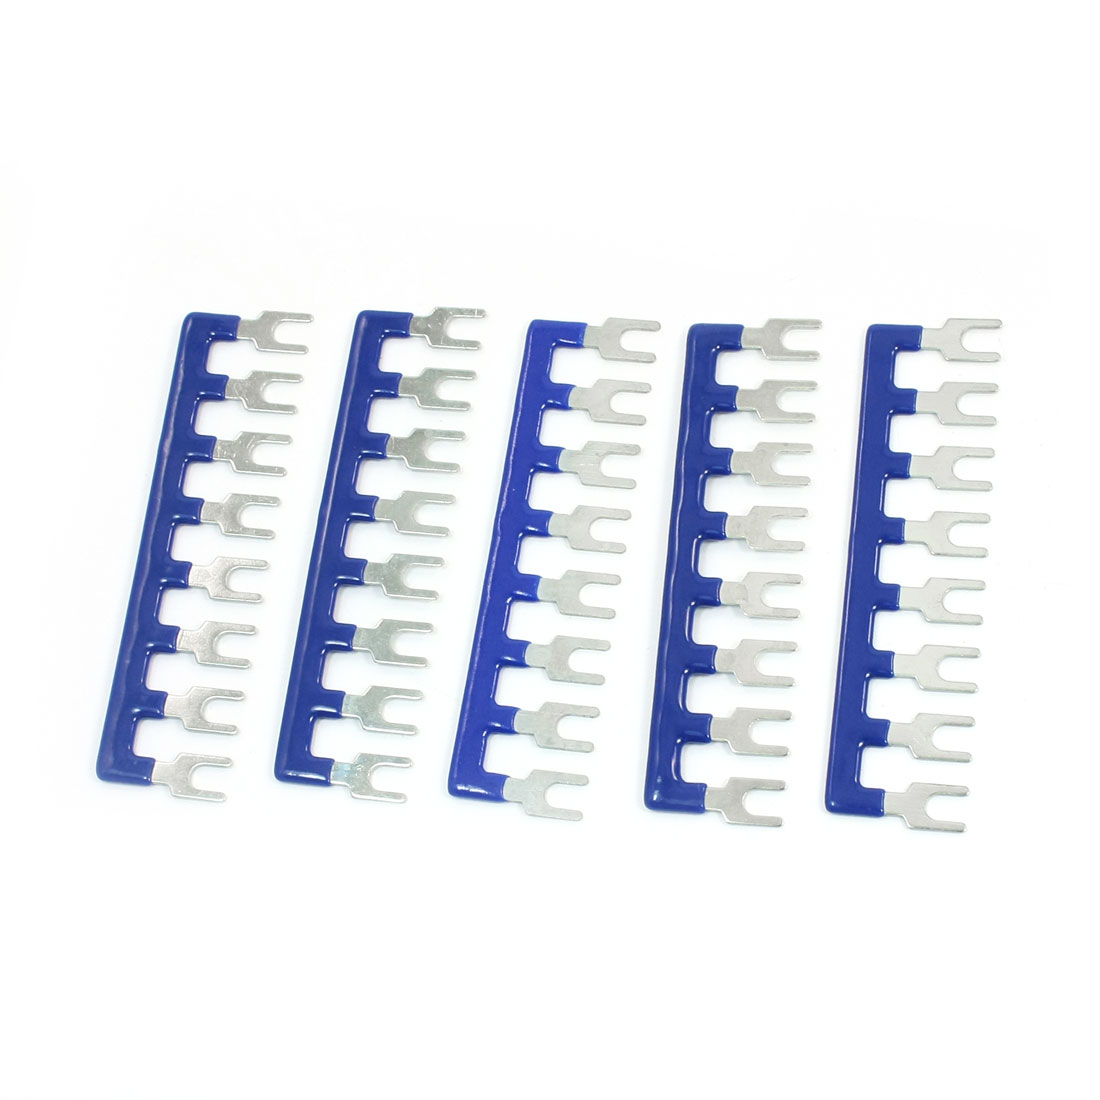 TB2508 25A 8 Position Pre Insulated Fork Type Blue Barrier Terminal Connector Strip 5 Pcs